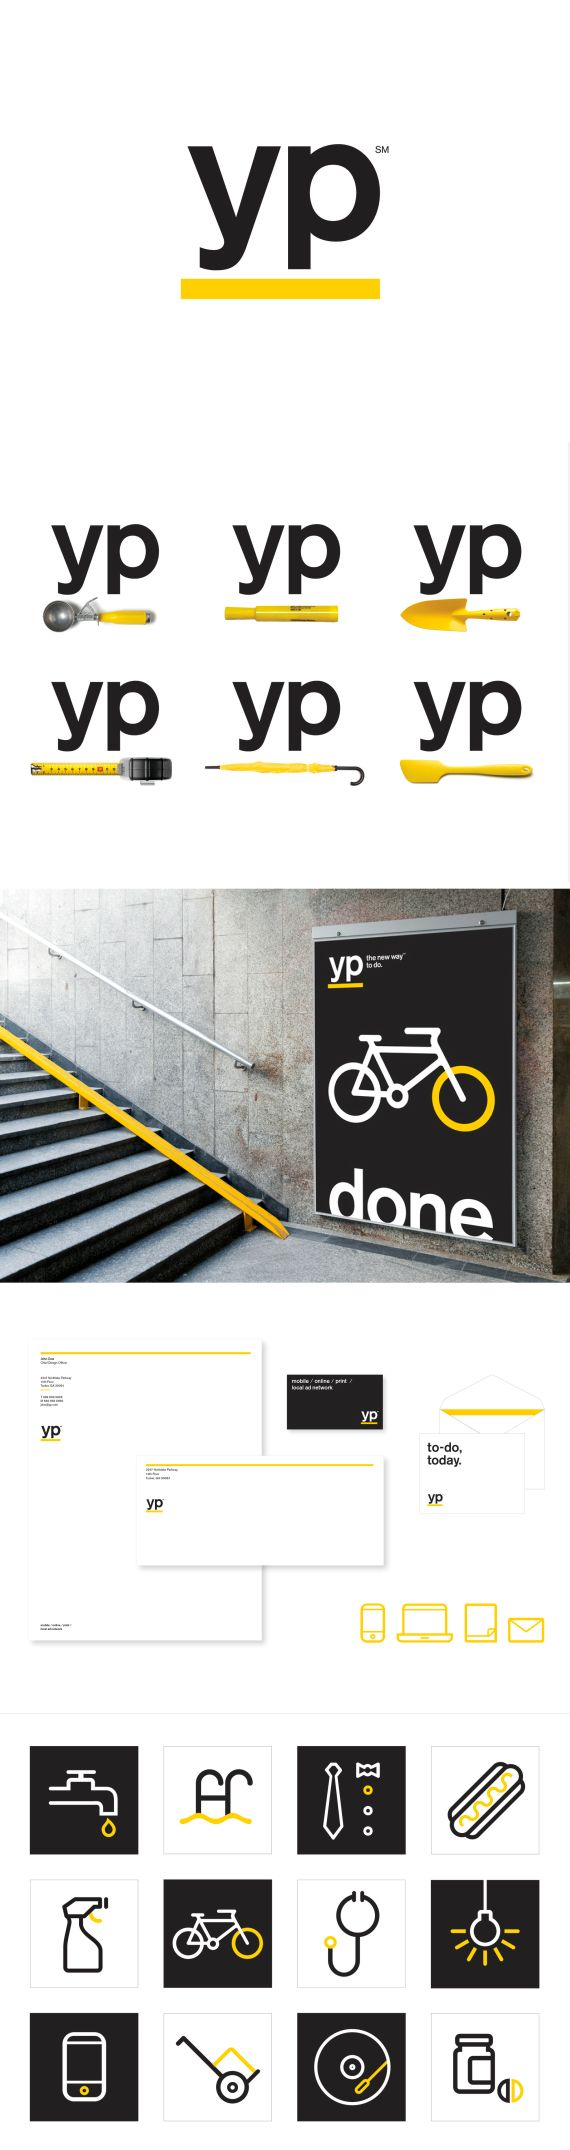 Yellow Pages brand design refresh